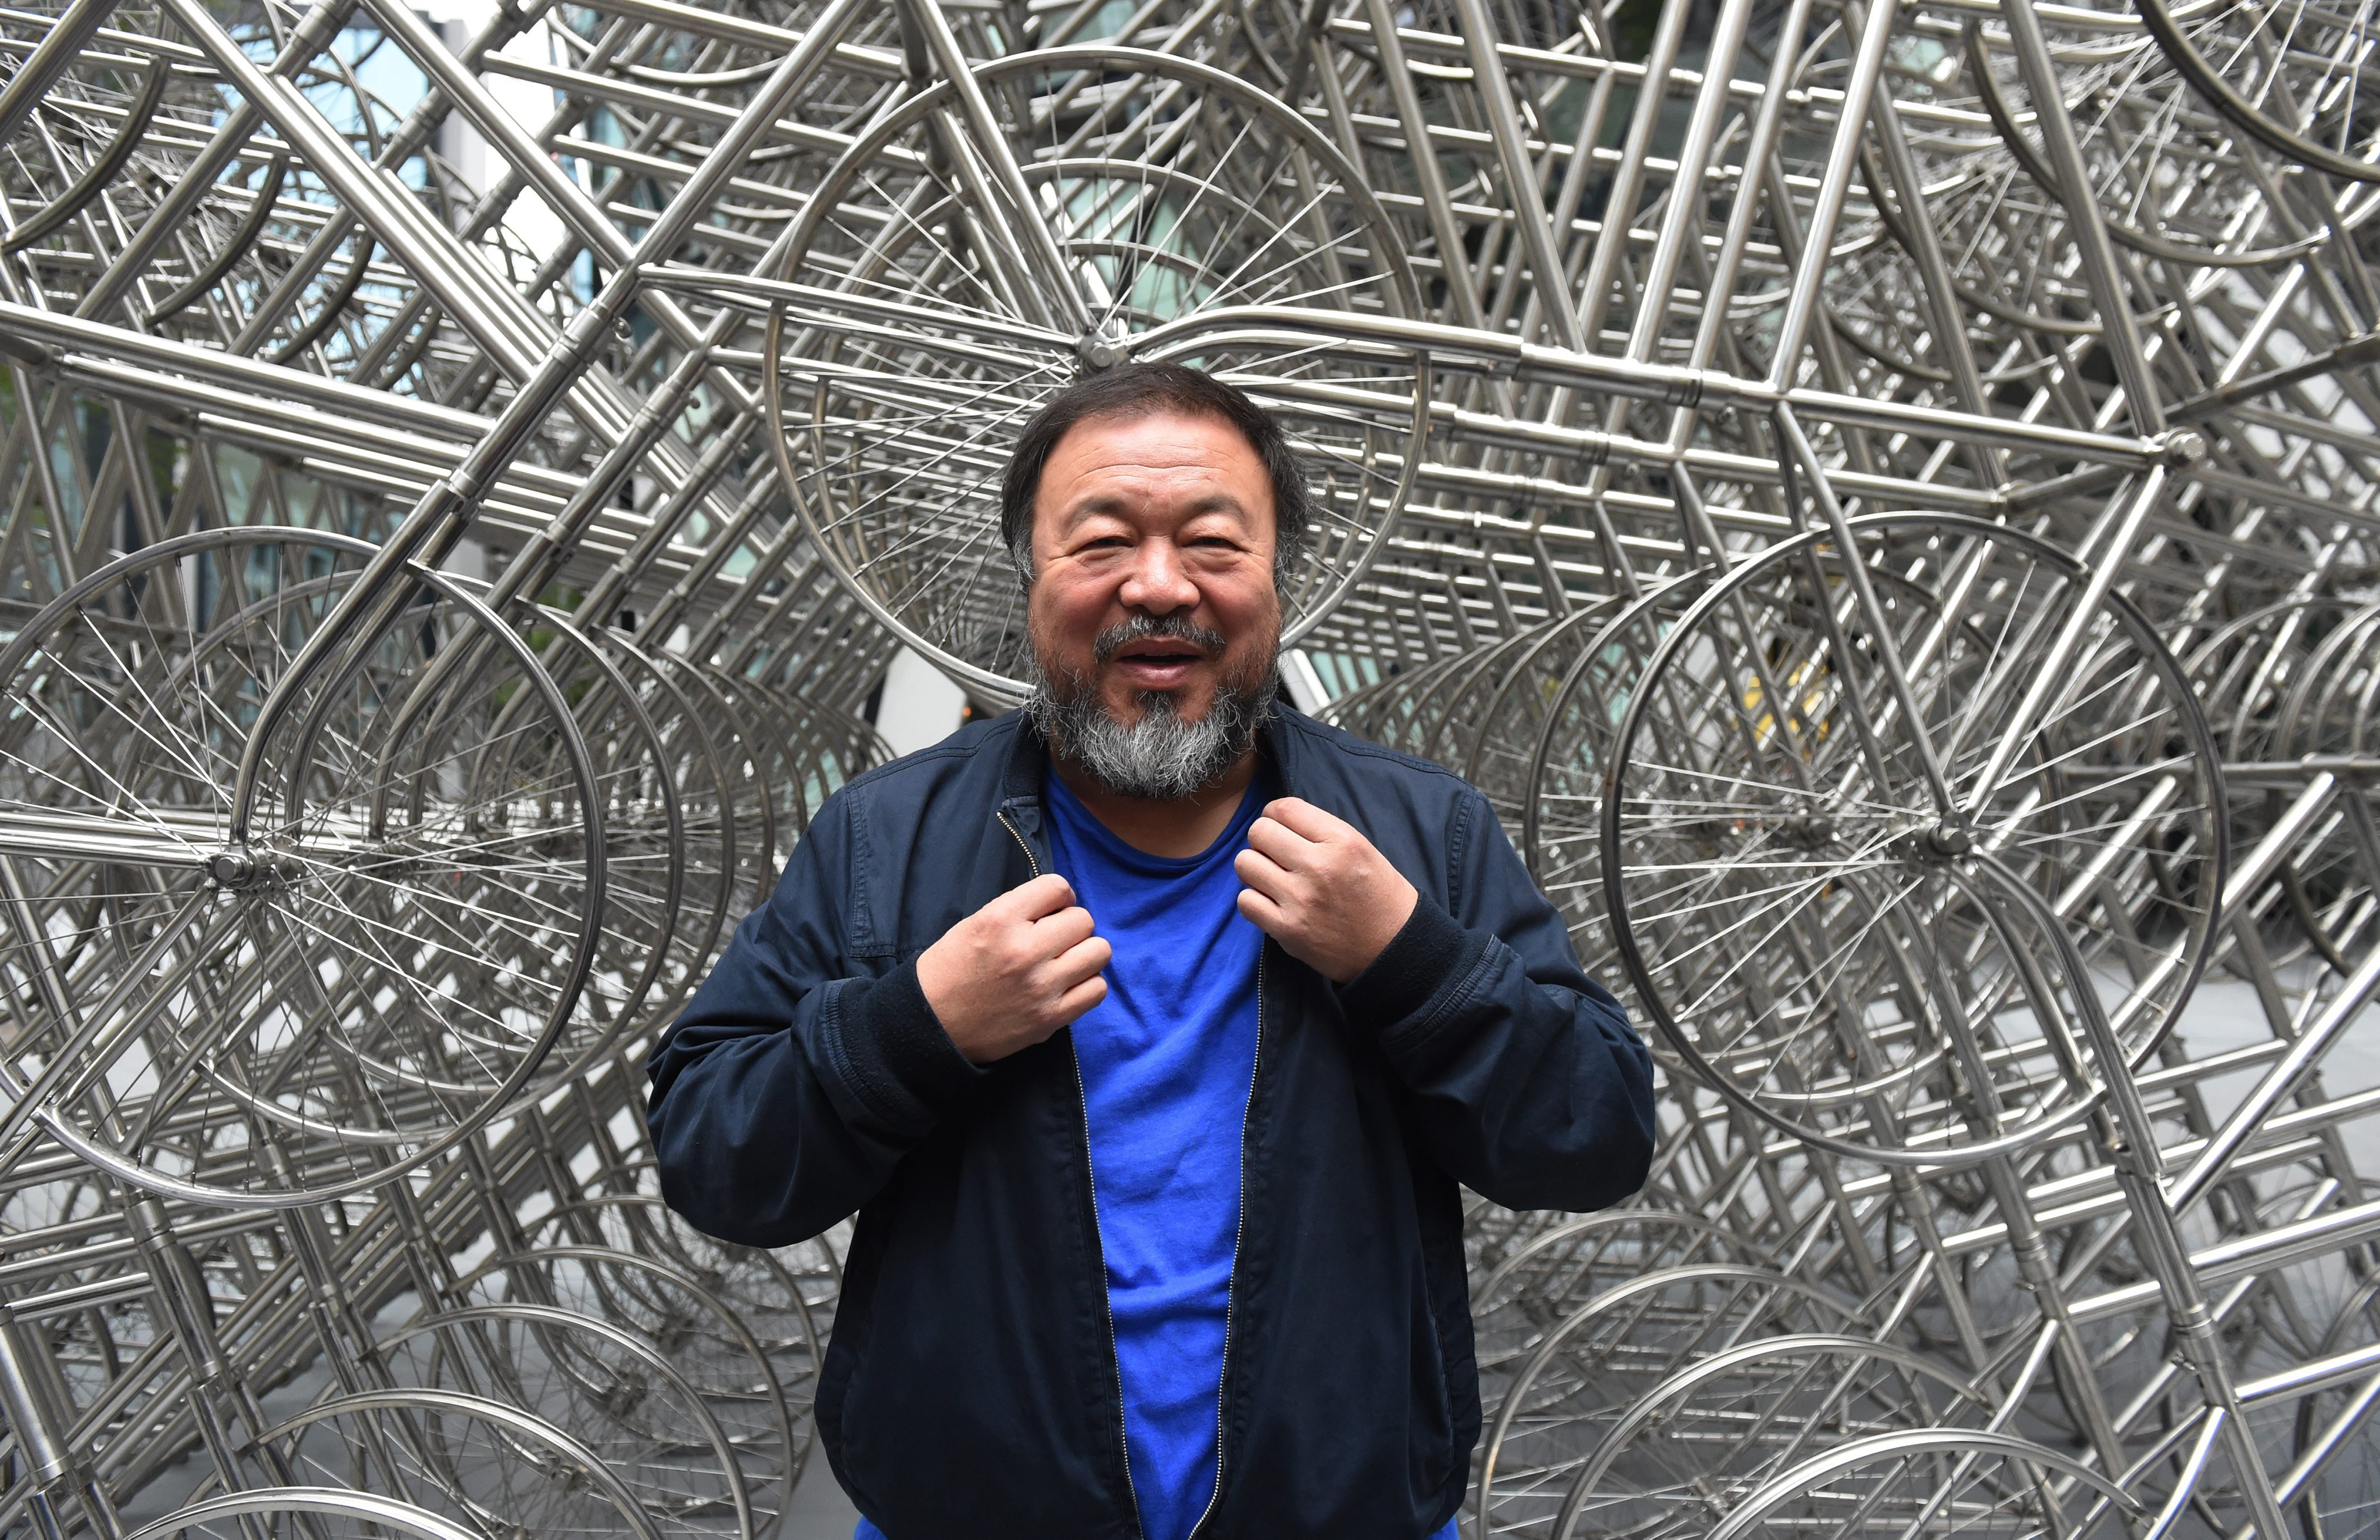 sandra model pissing Ai Weiwei at the unveiling of Forever, consists of 1,245 bicycle frames,  outside the Gherkin building in London. Photo: EPA